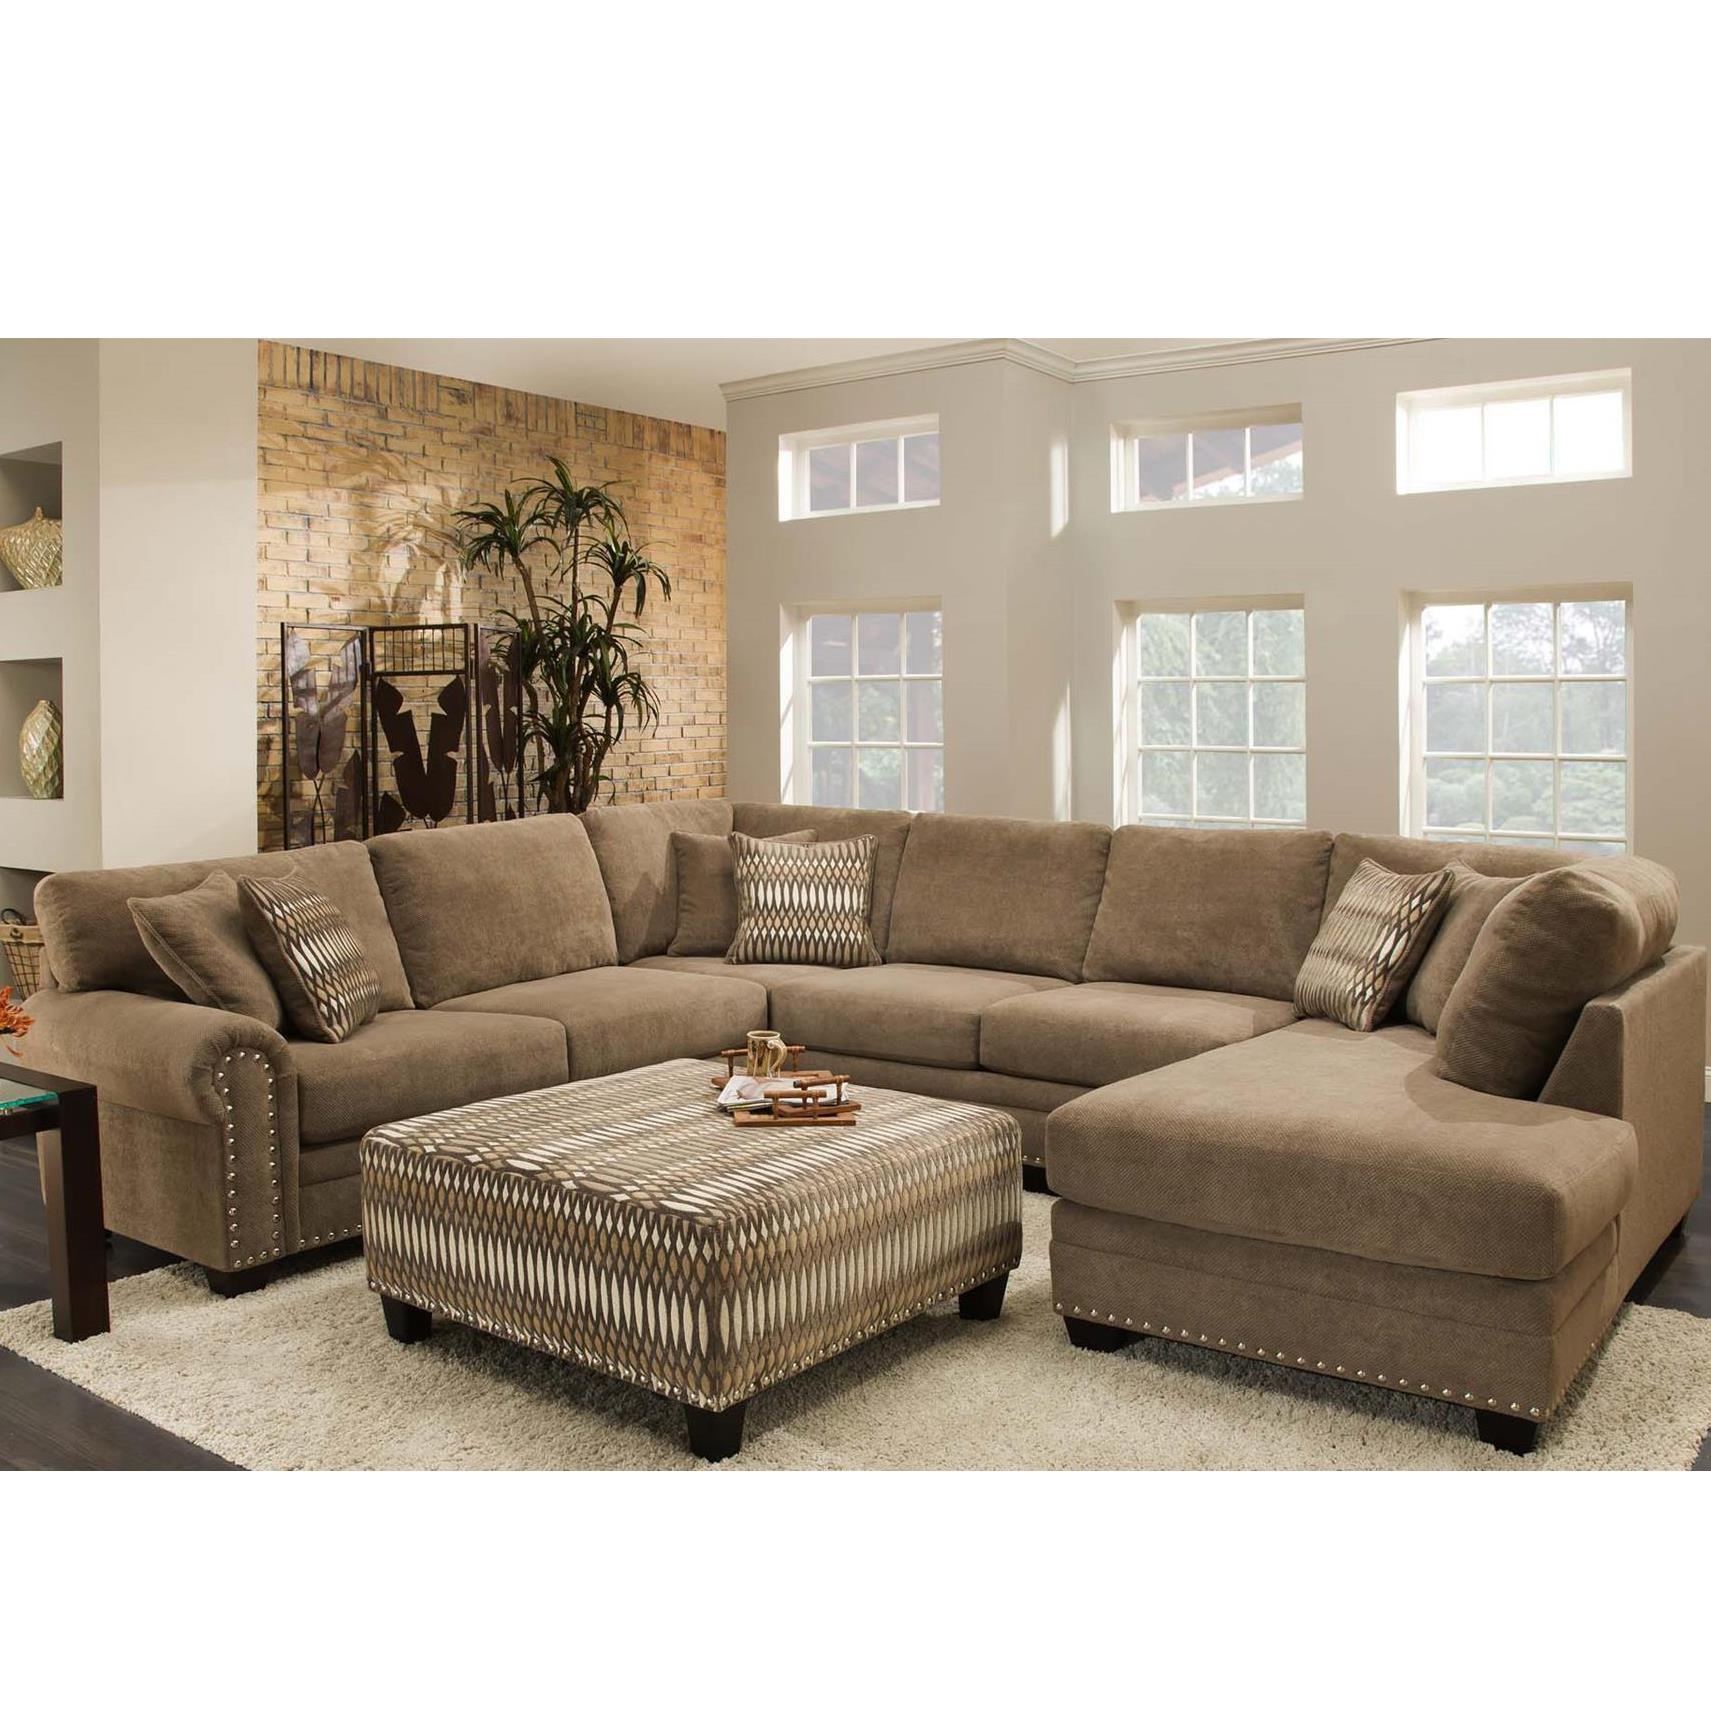 Albany 8648 Collection Casual Sectional - Item Number: 8648-61+67+63-Bigo Porcini